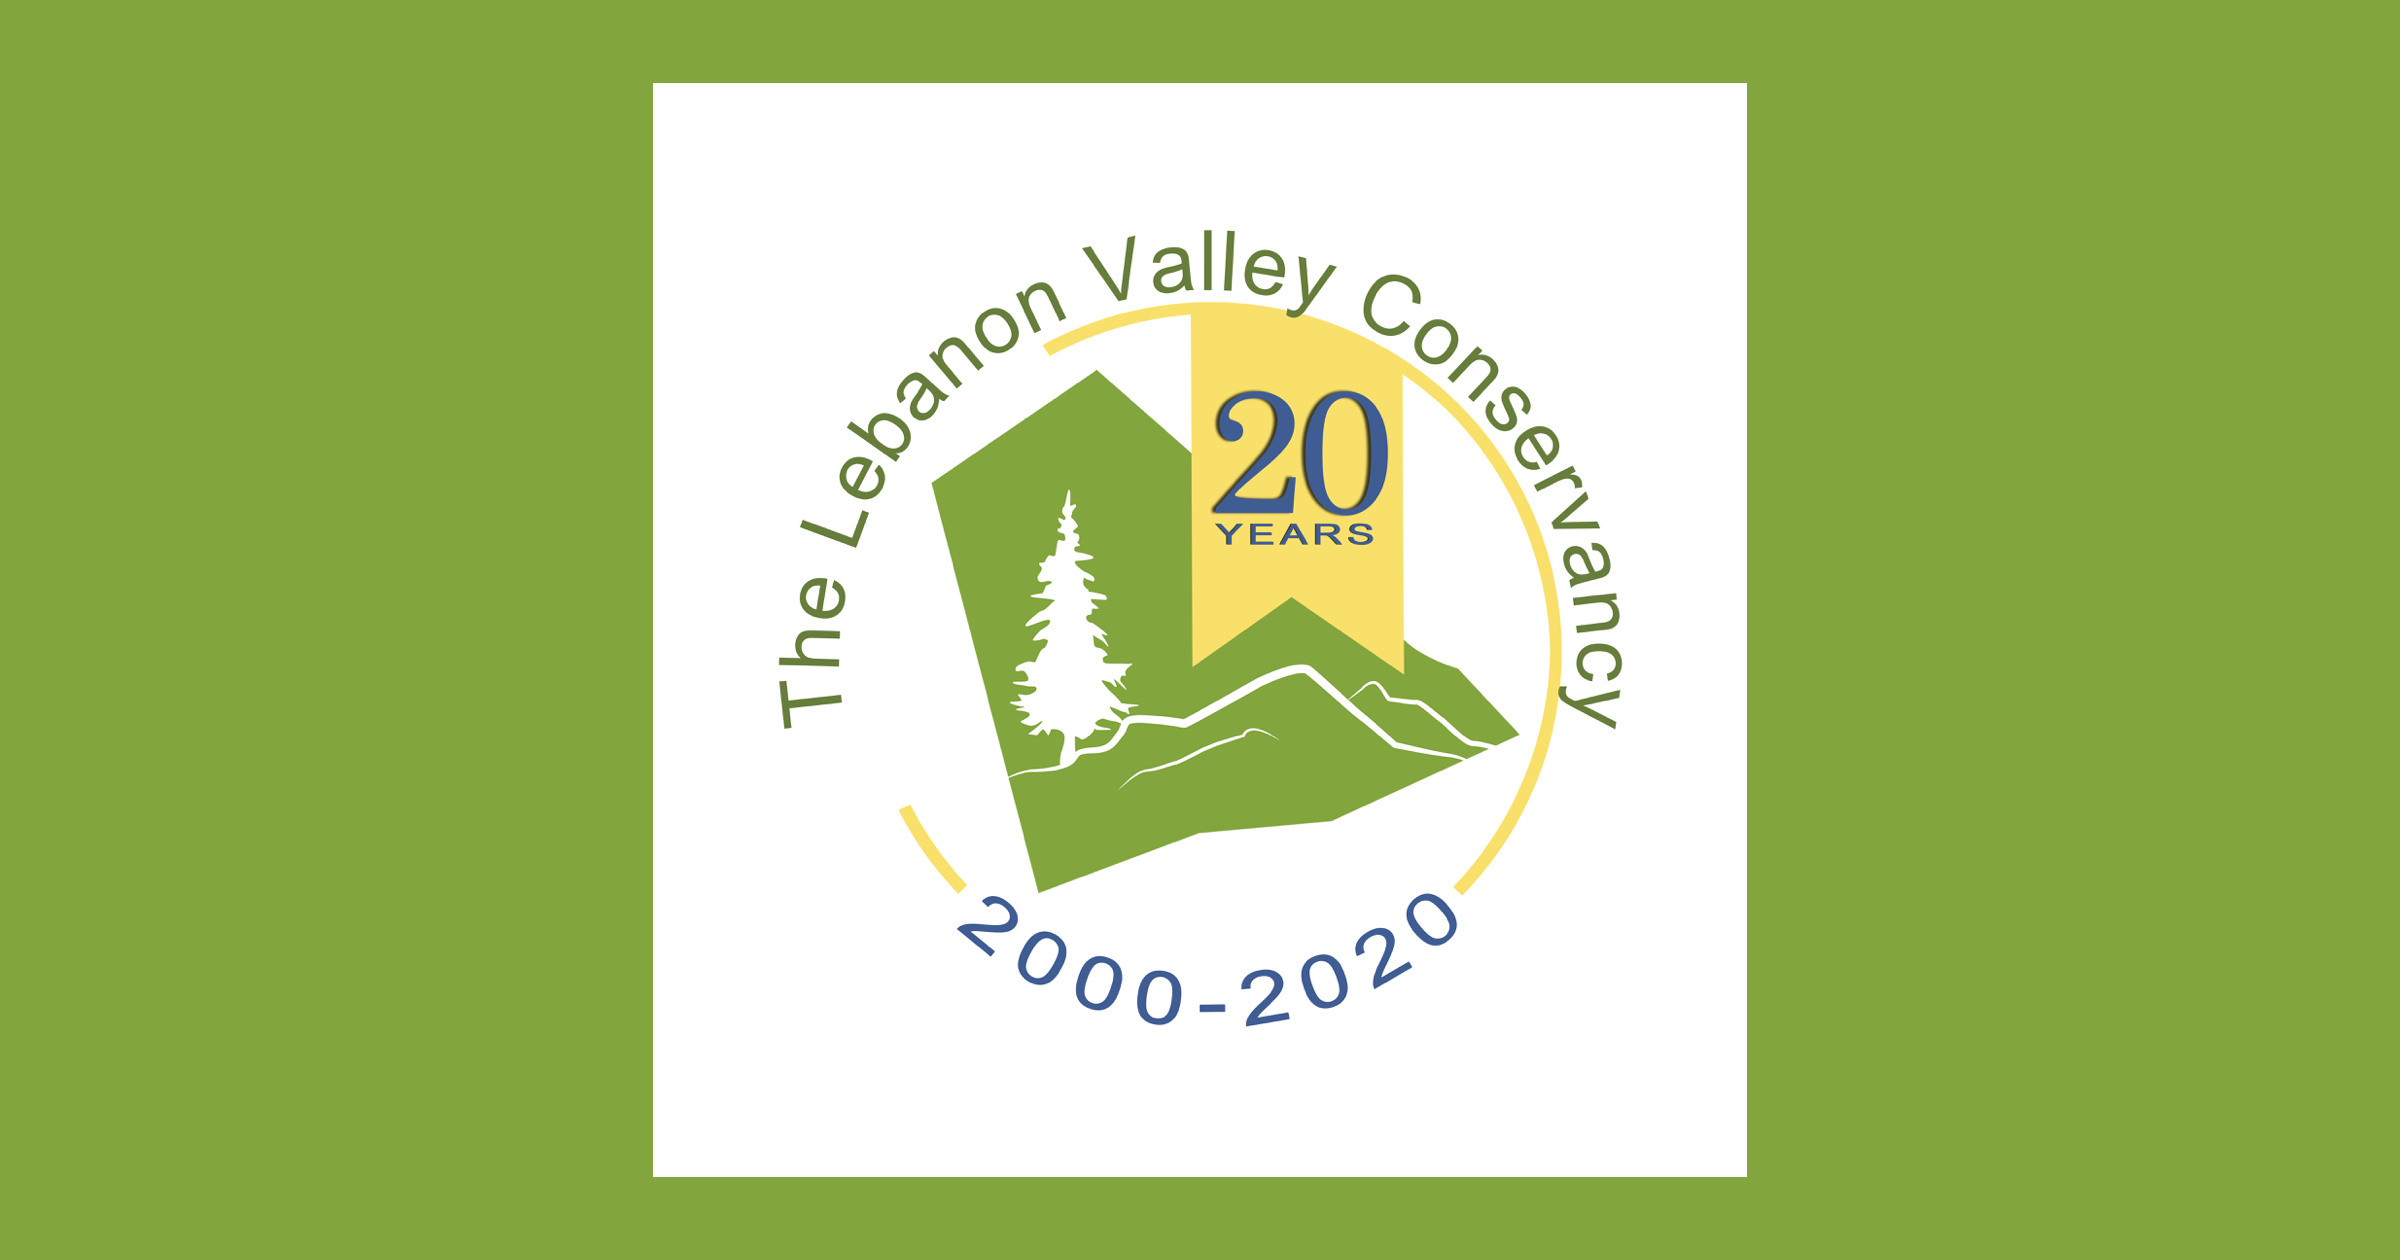 Lebanon Valley Conservancy offers scholarship in memory of the Lights